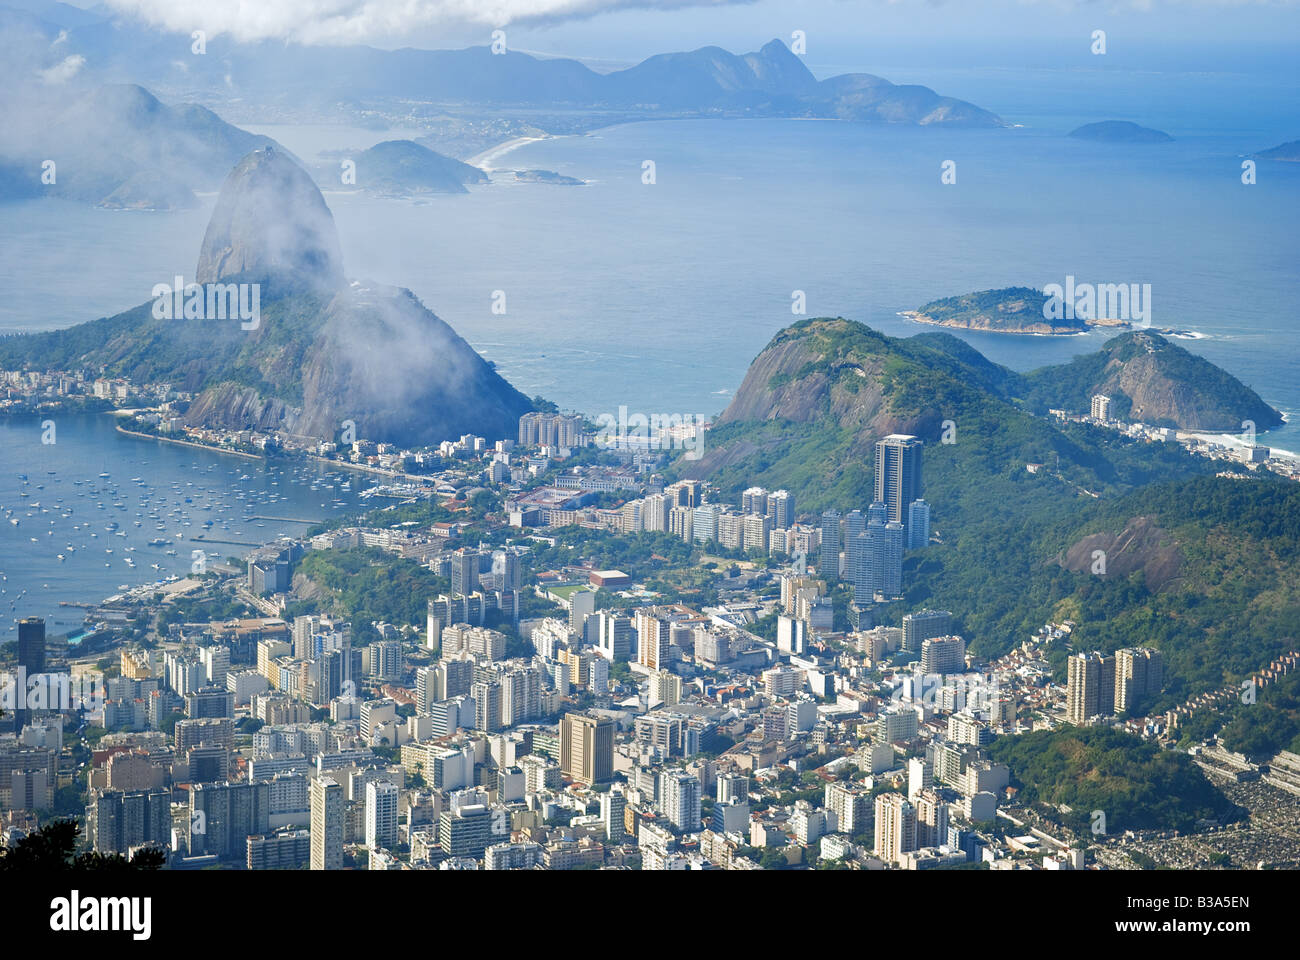 Scenic view of Rio de Janeiro and Sugar Loaf Mountain, Brazil. - Stock Image